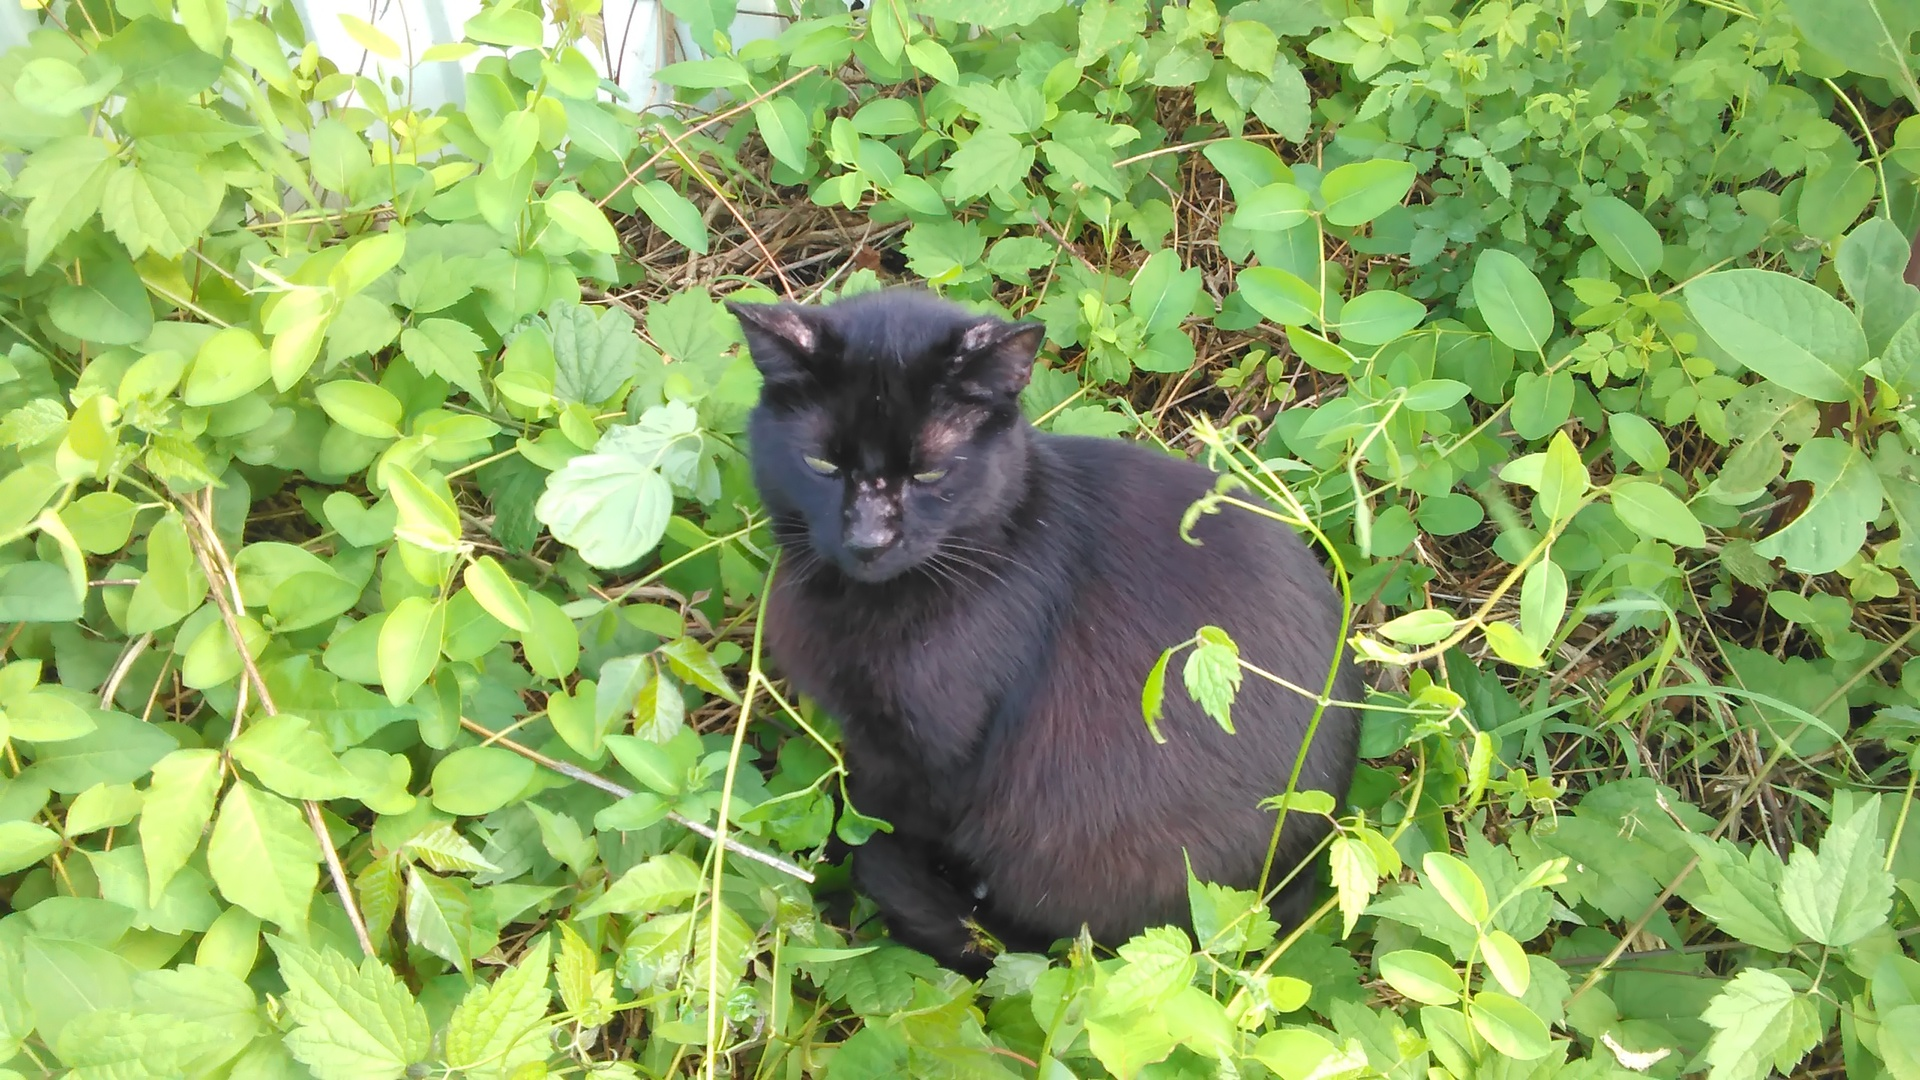 Black cat in hiding | codenamesailorearth, garden, leaf, grass